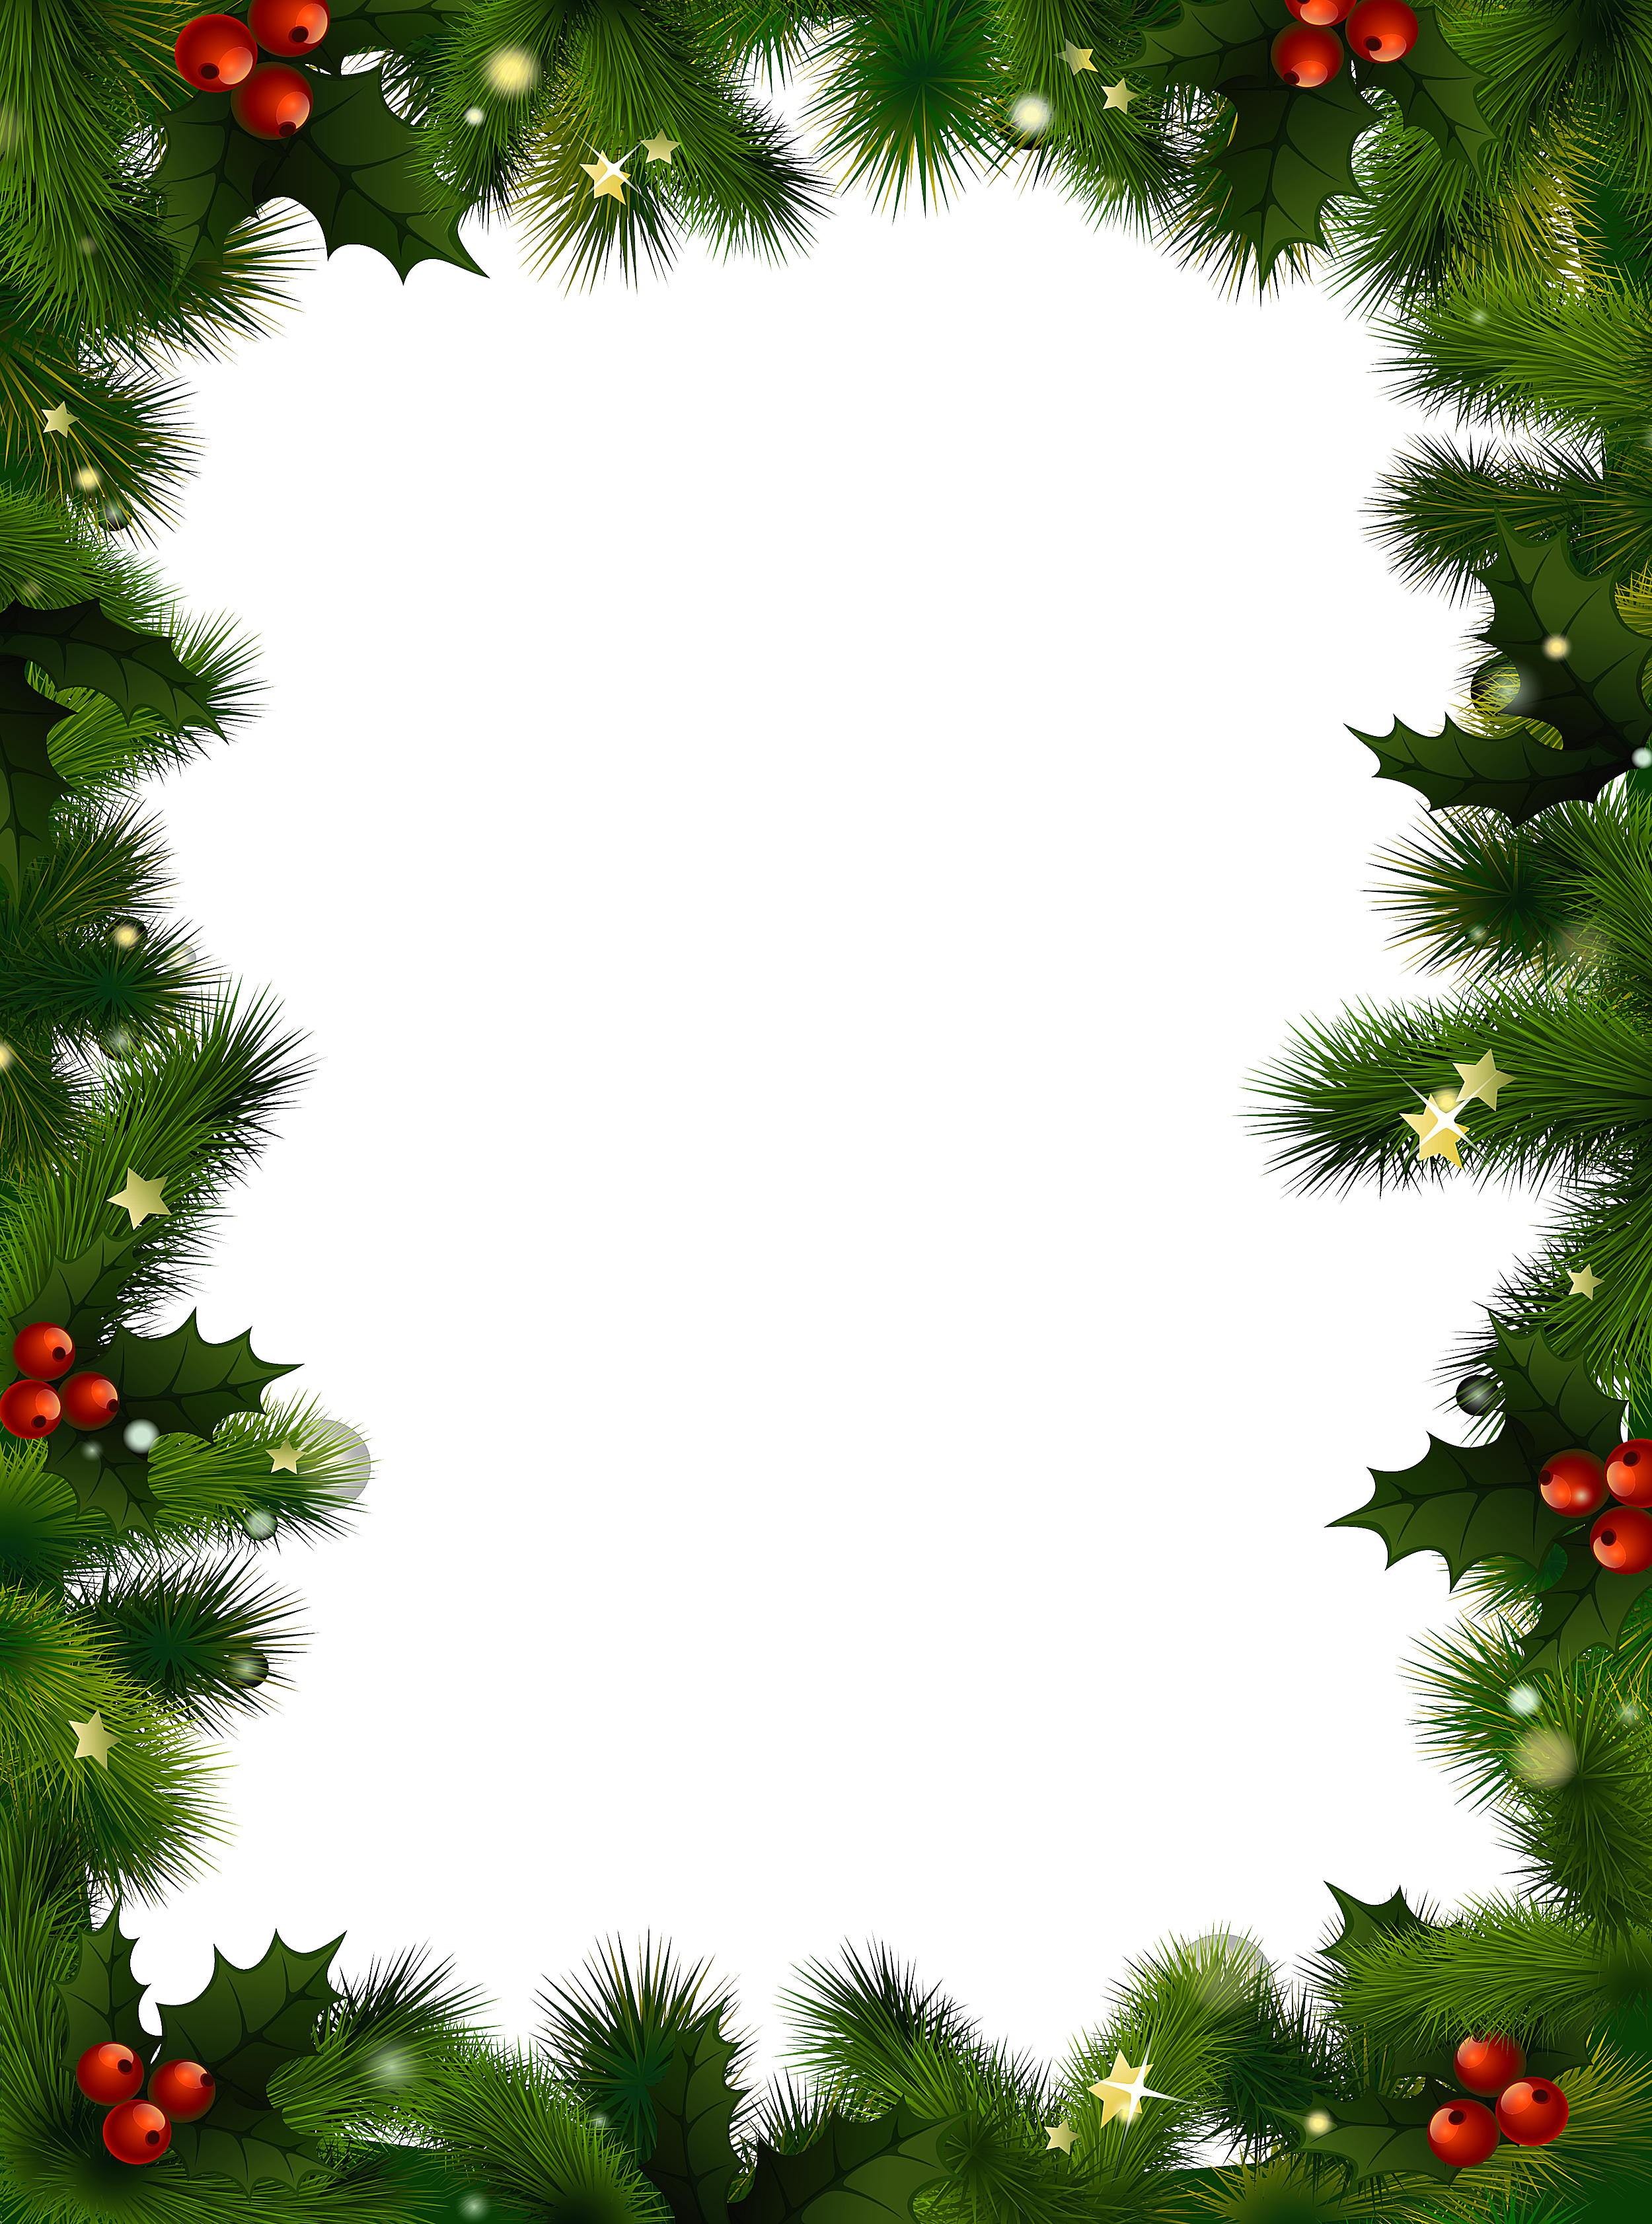 Free Christmas Borders You Can .